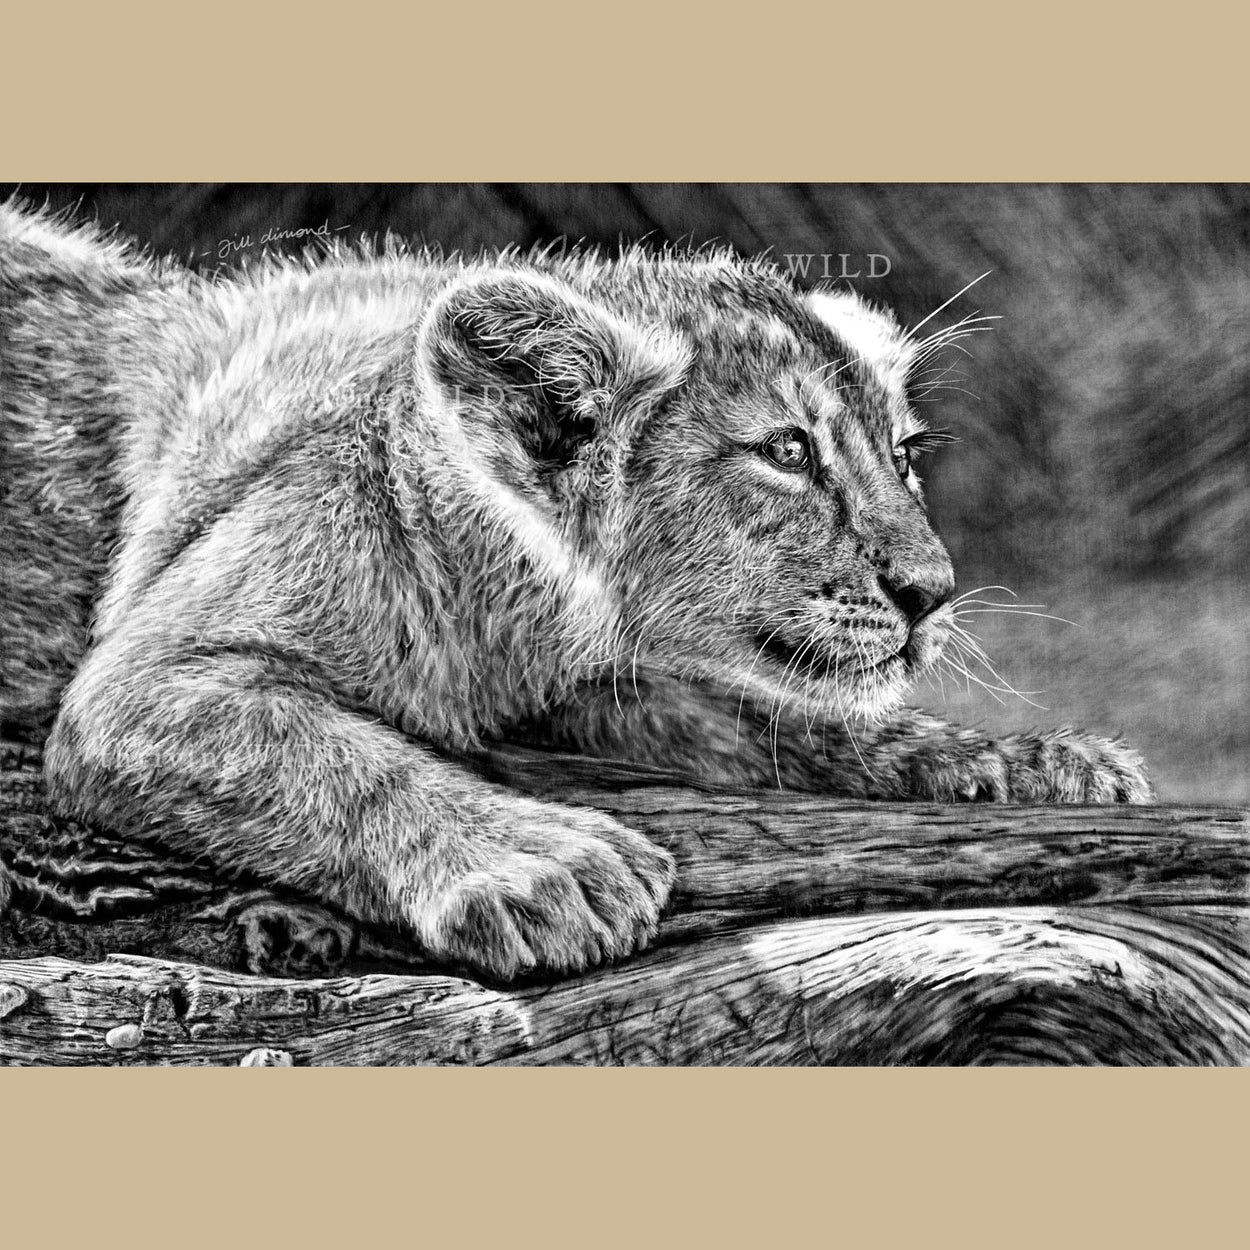 Lion Cub Digital Procreate Drawing Wildlife - The Thriving Wild